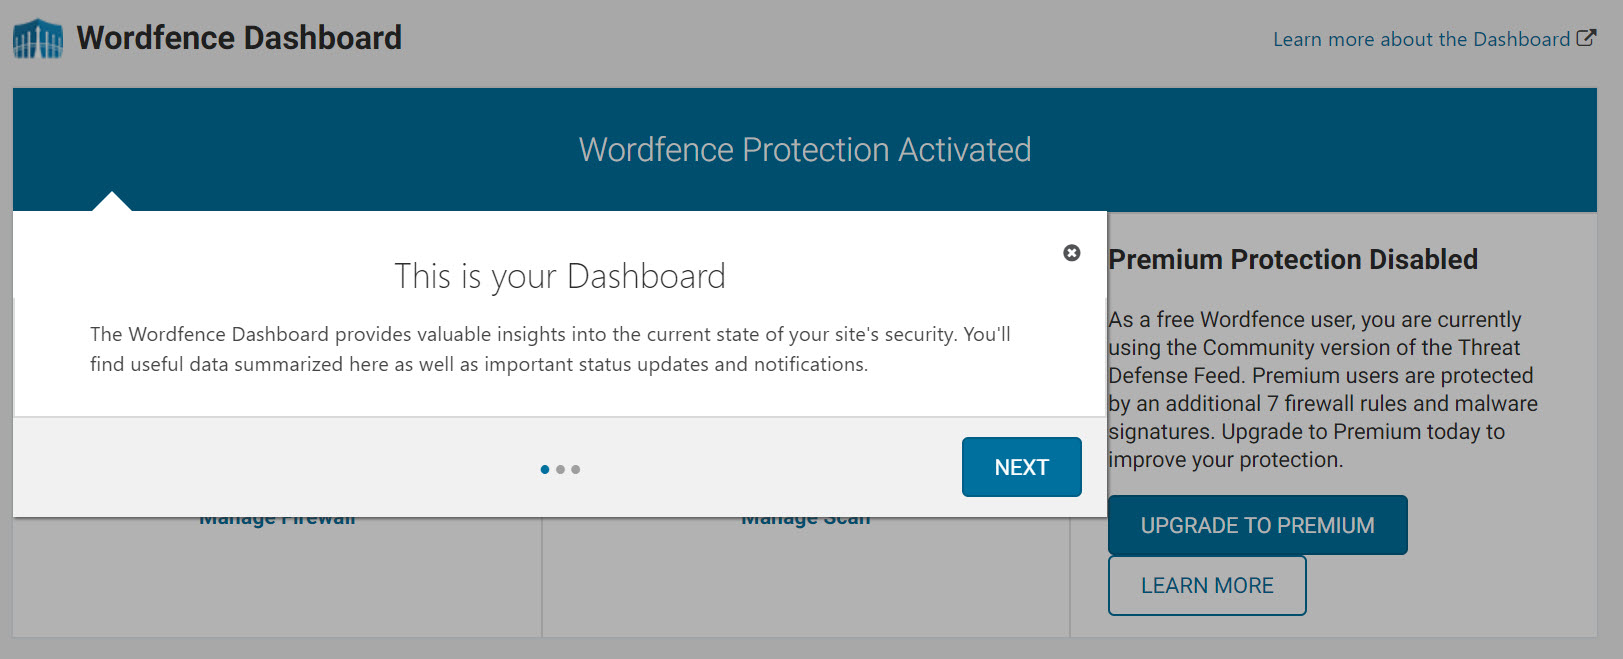 Wordfence Dashboard